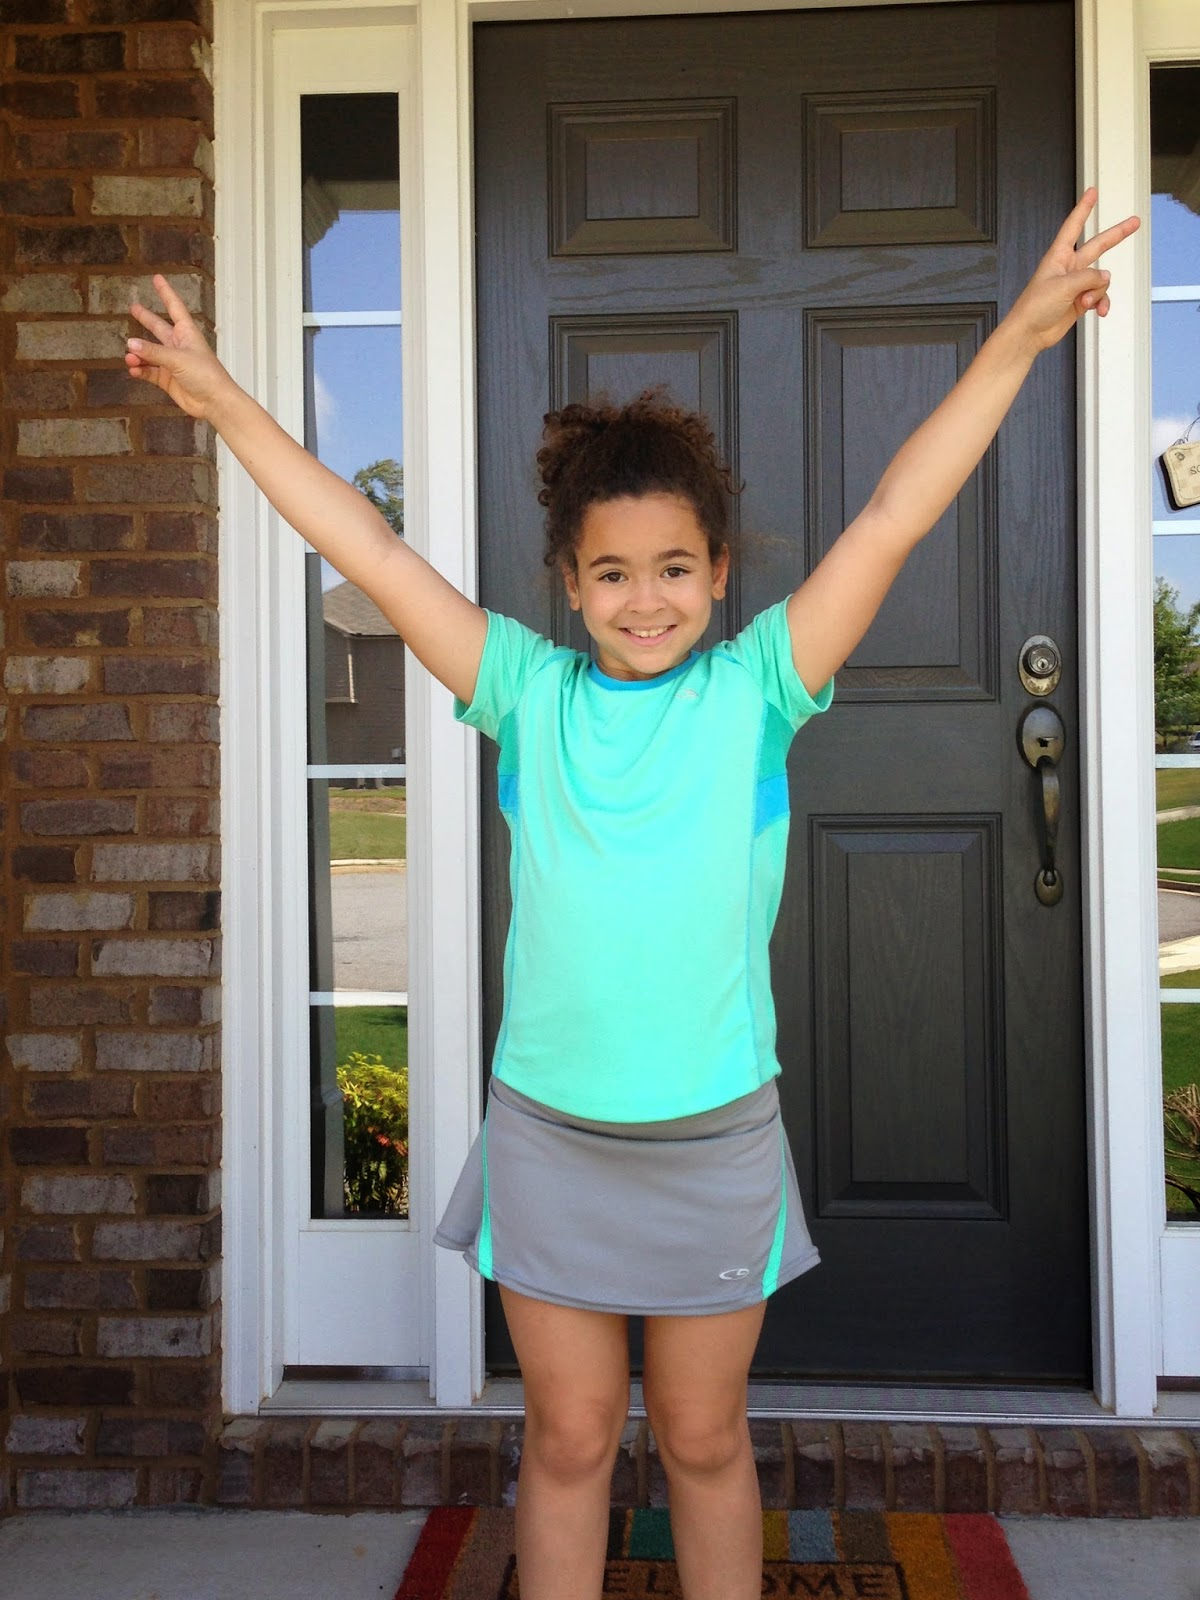 Two Little Girls With Curls: Good-bye Fourth Grade and ...